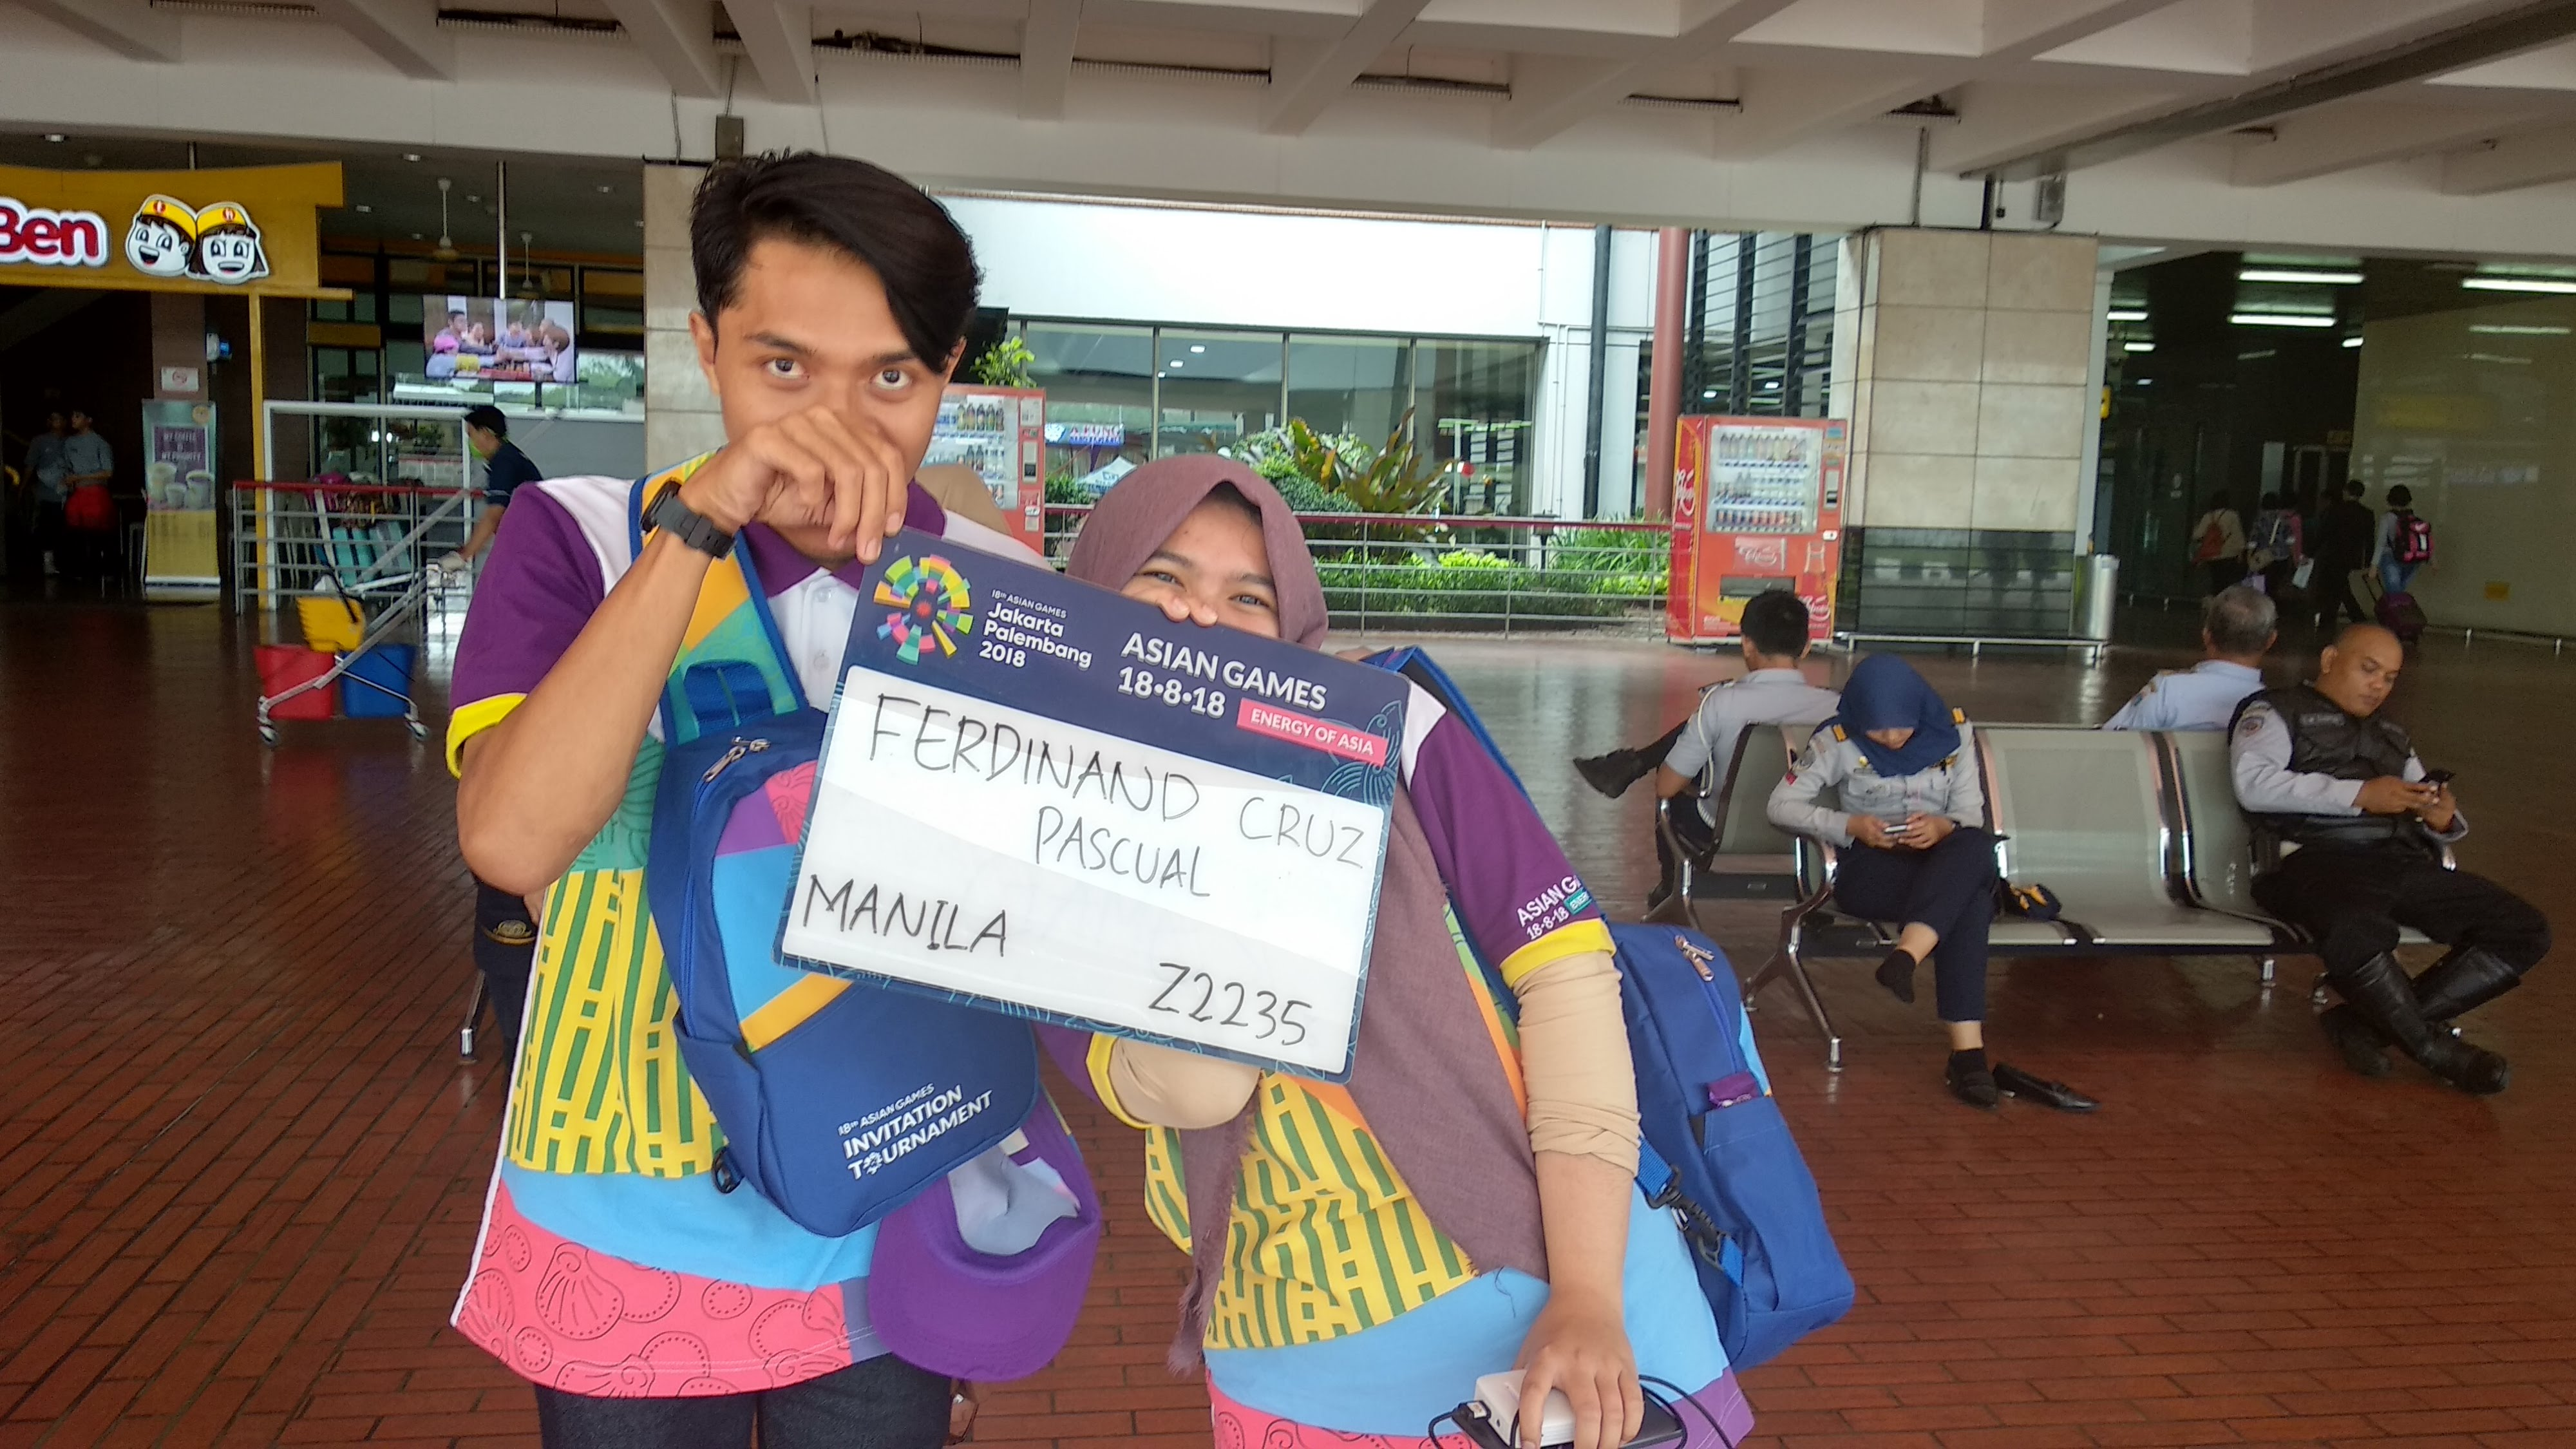 IMG 20180206 100450 HDR - Asian Games Volunteer Pengalaman